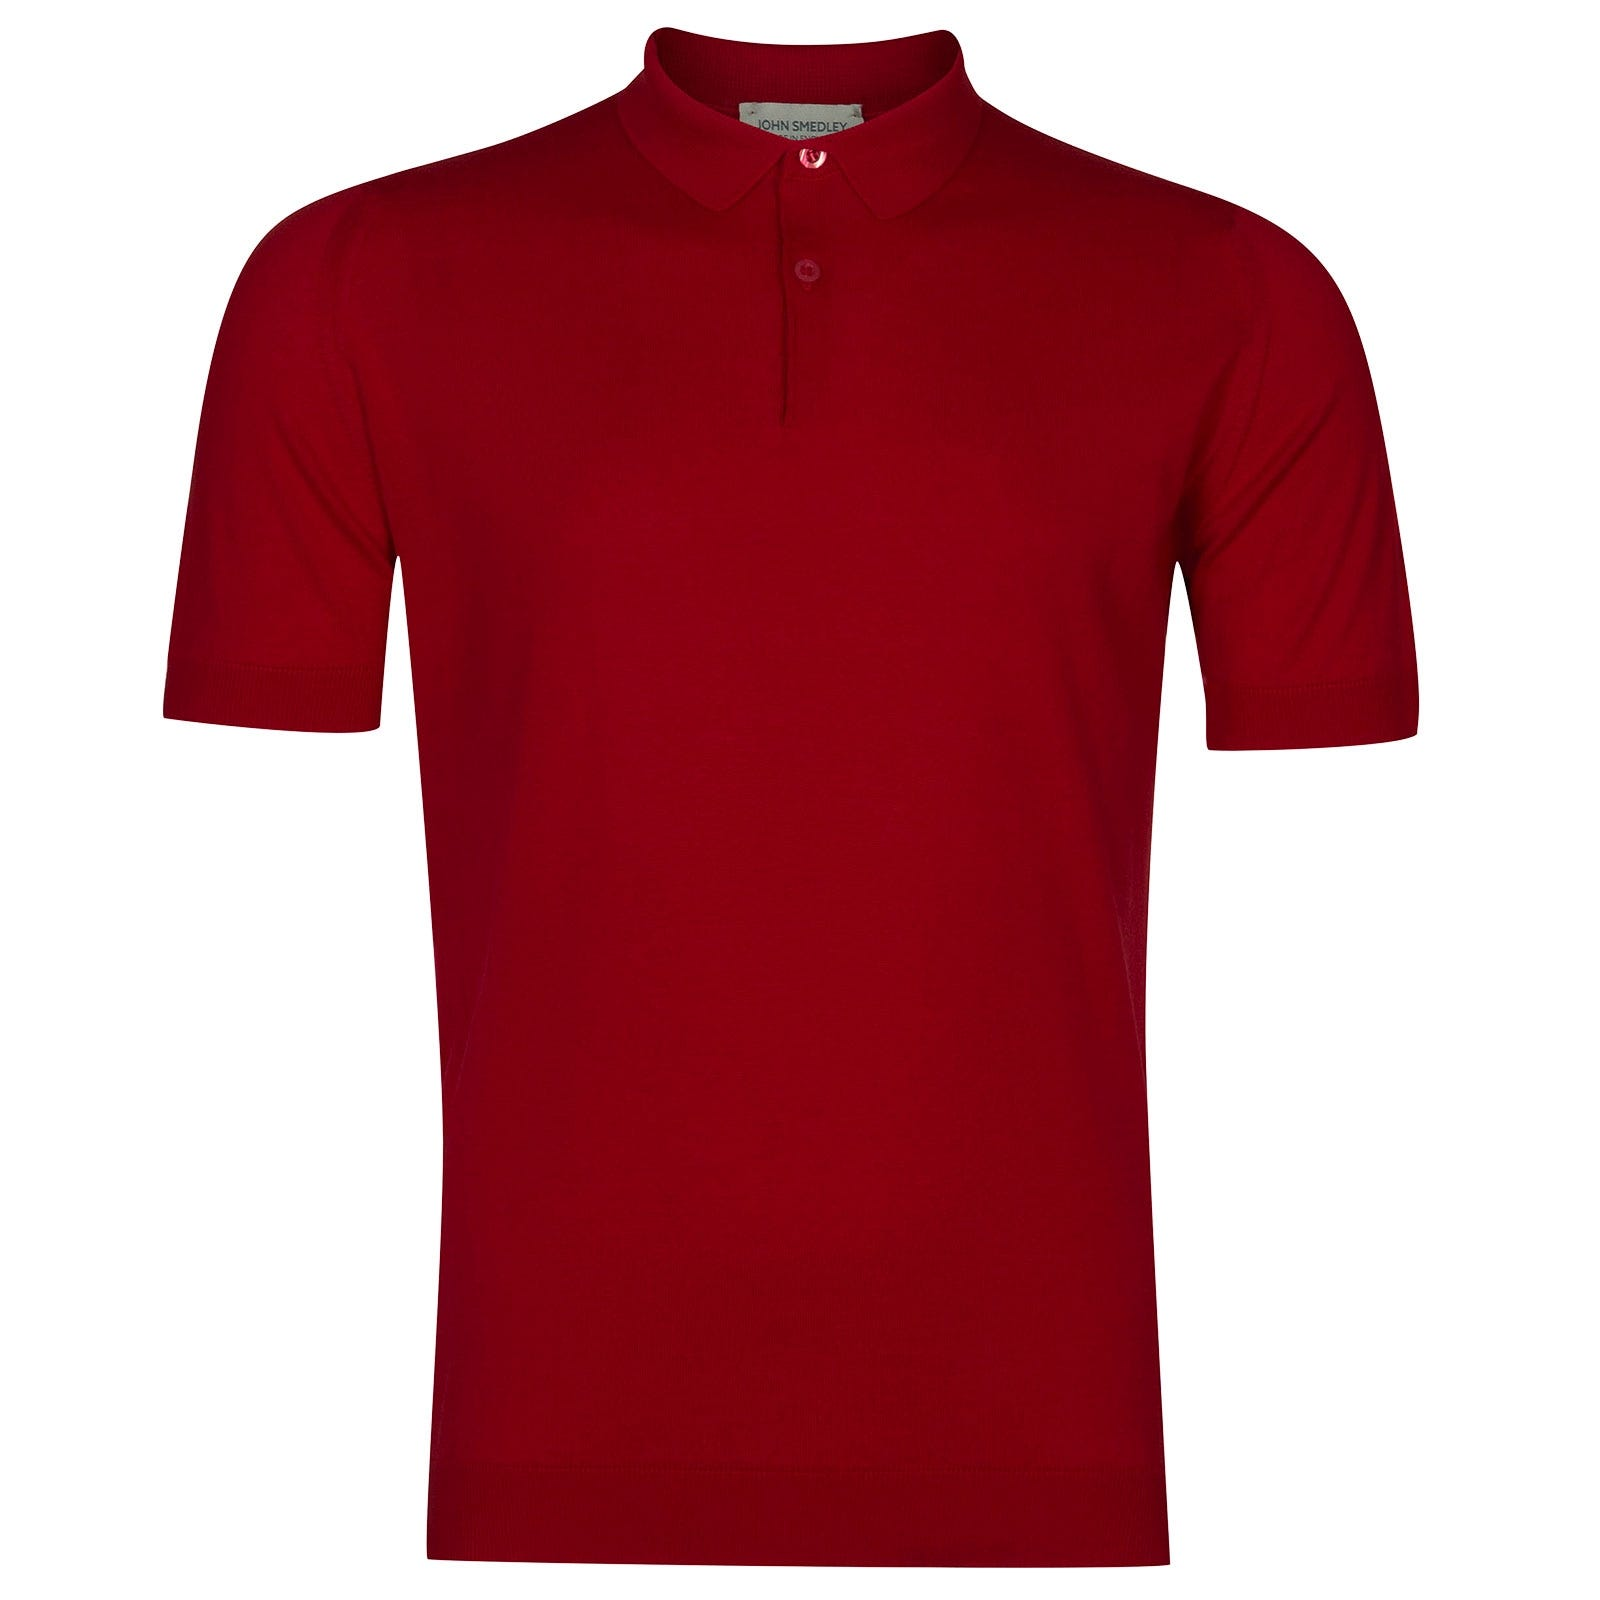 John Smedley Rhodes Sea Island Cotton Shirt in Dandy Red-XXL